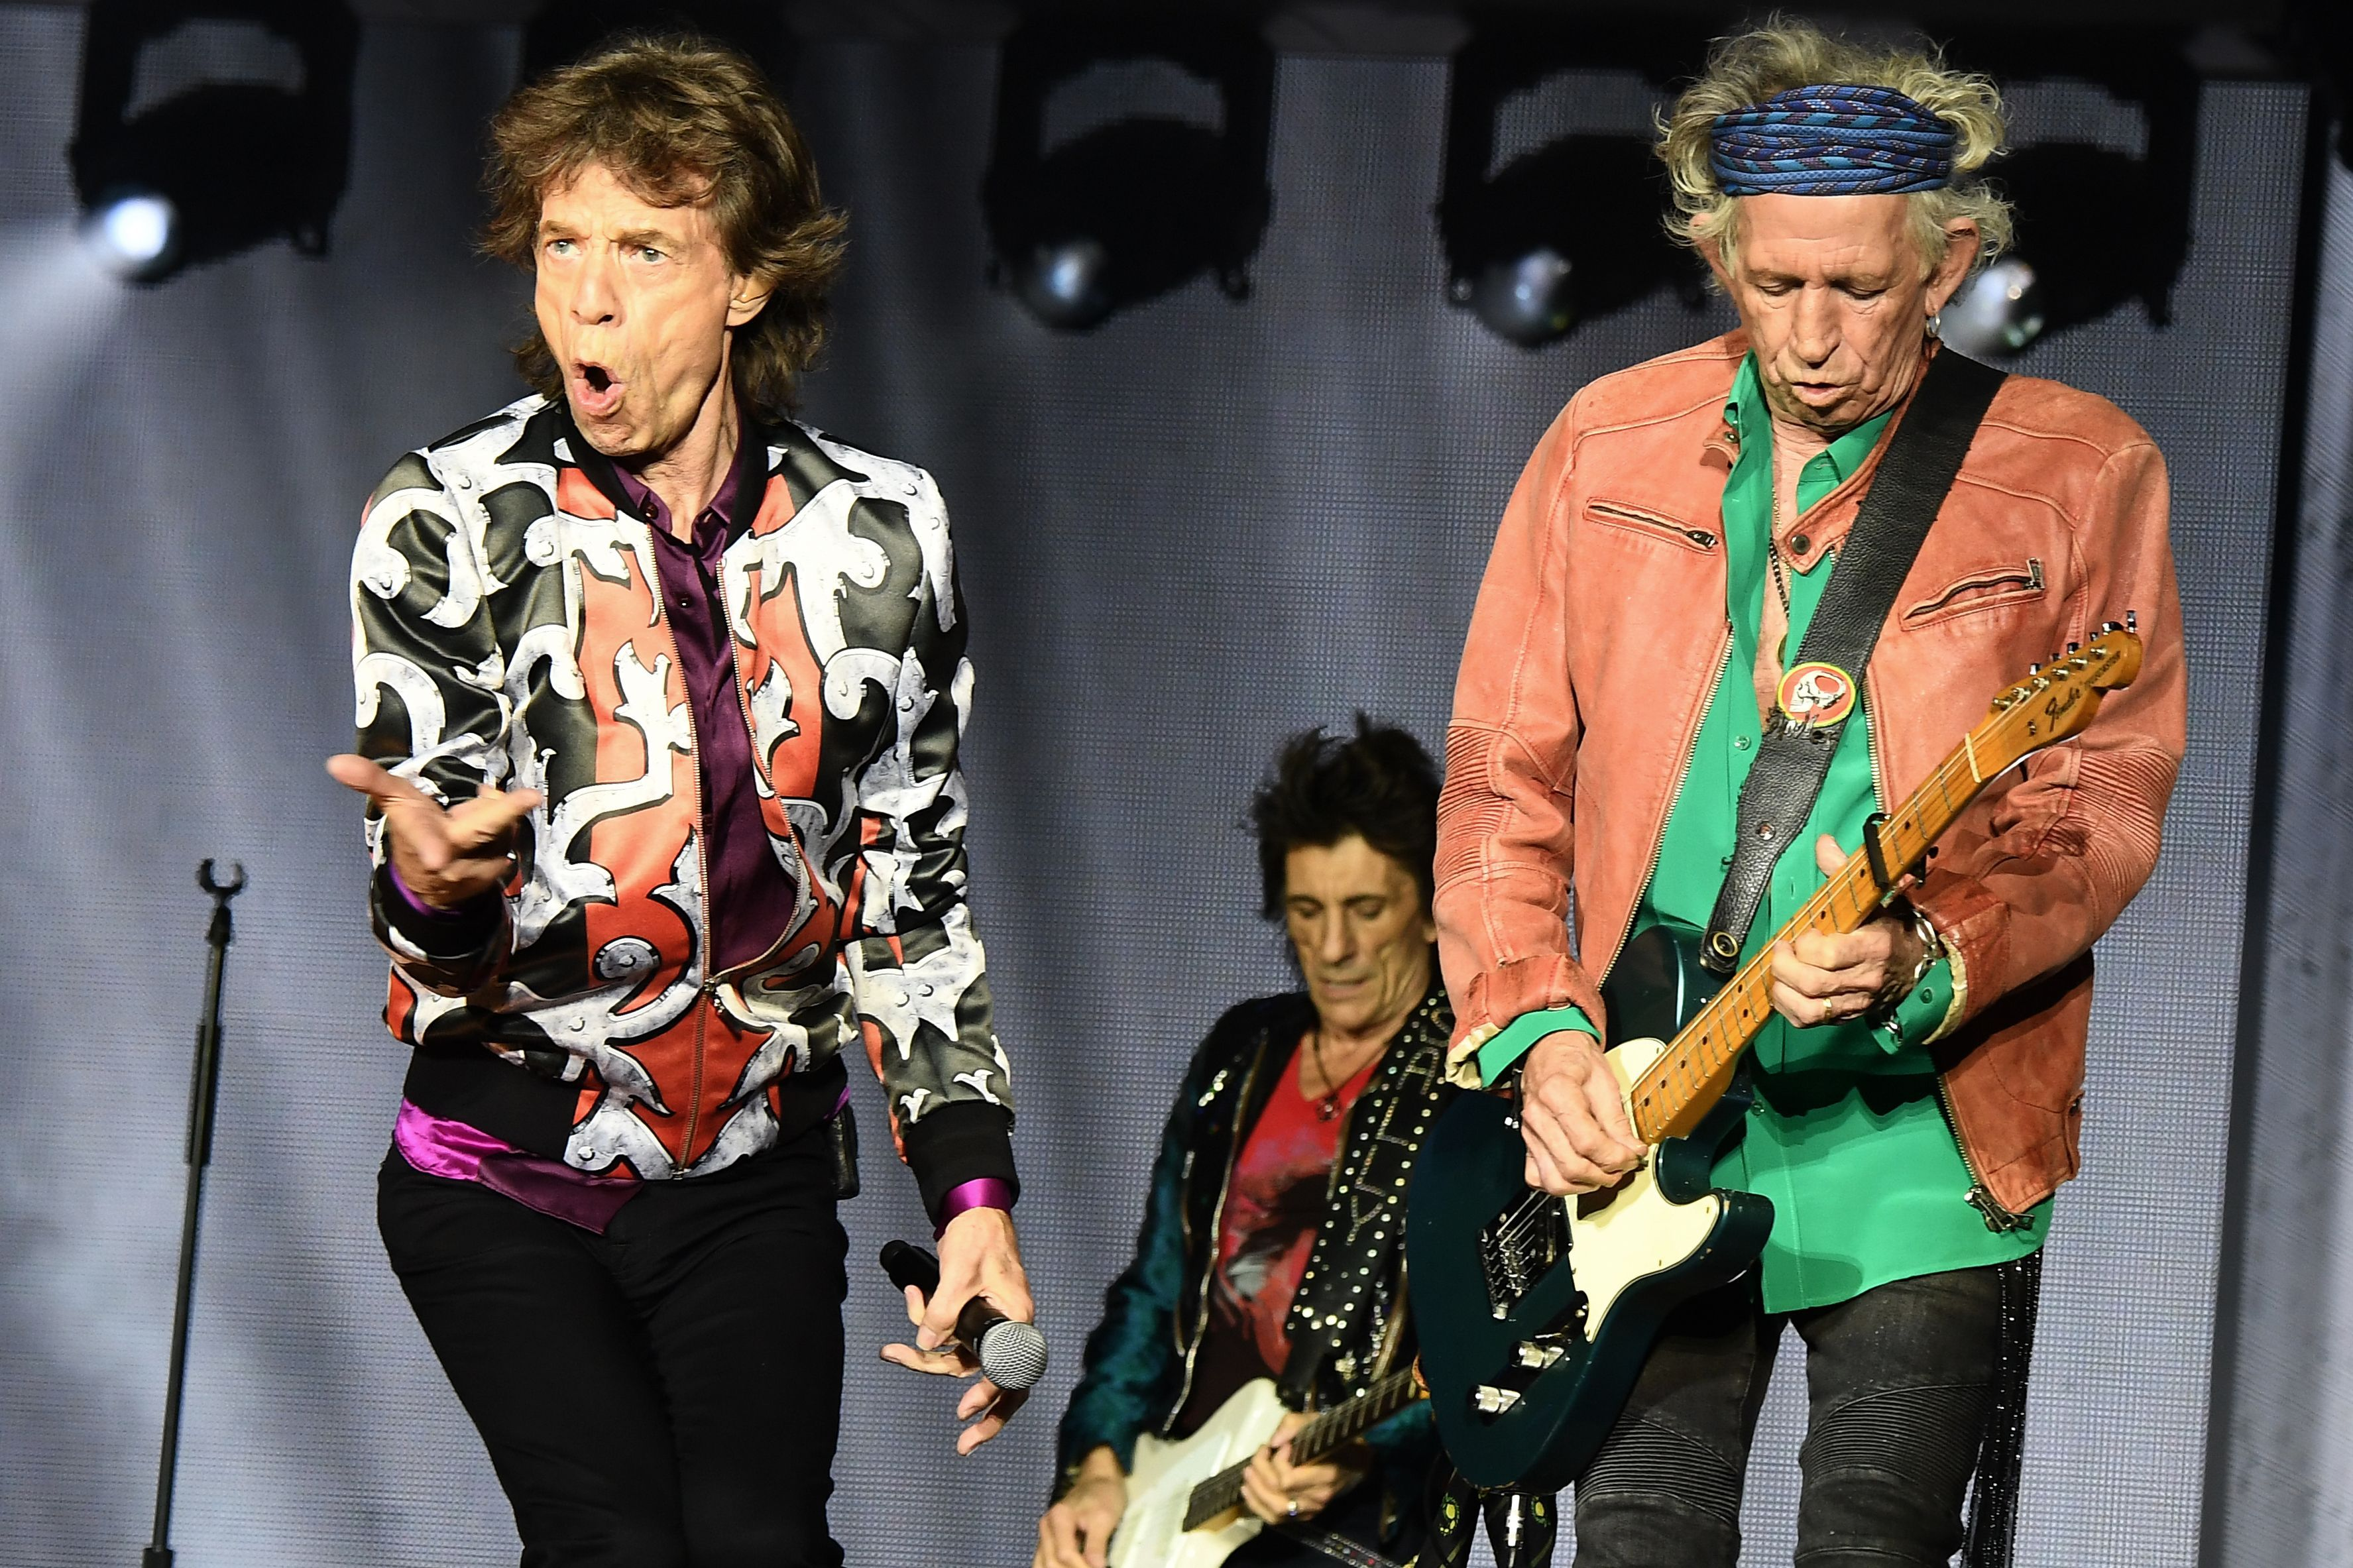 Rolling Stones concert in Ontario back on for June 29